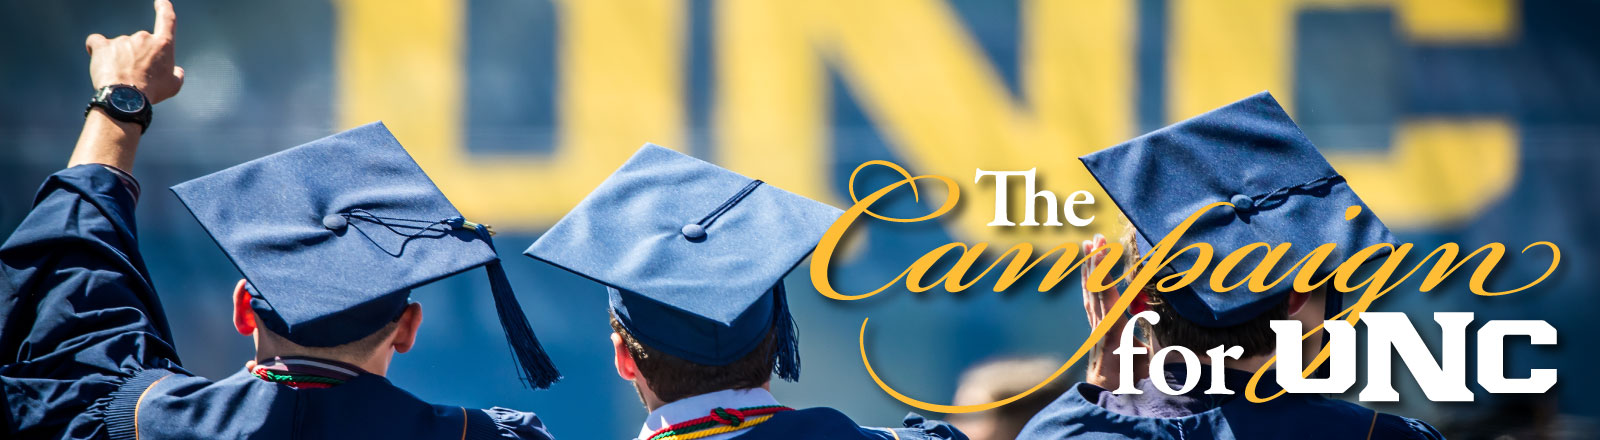 Commencement | Campaign for UNC